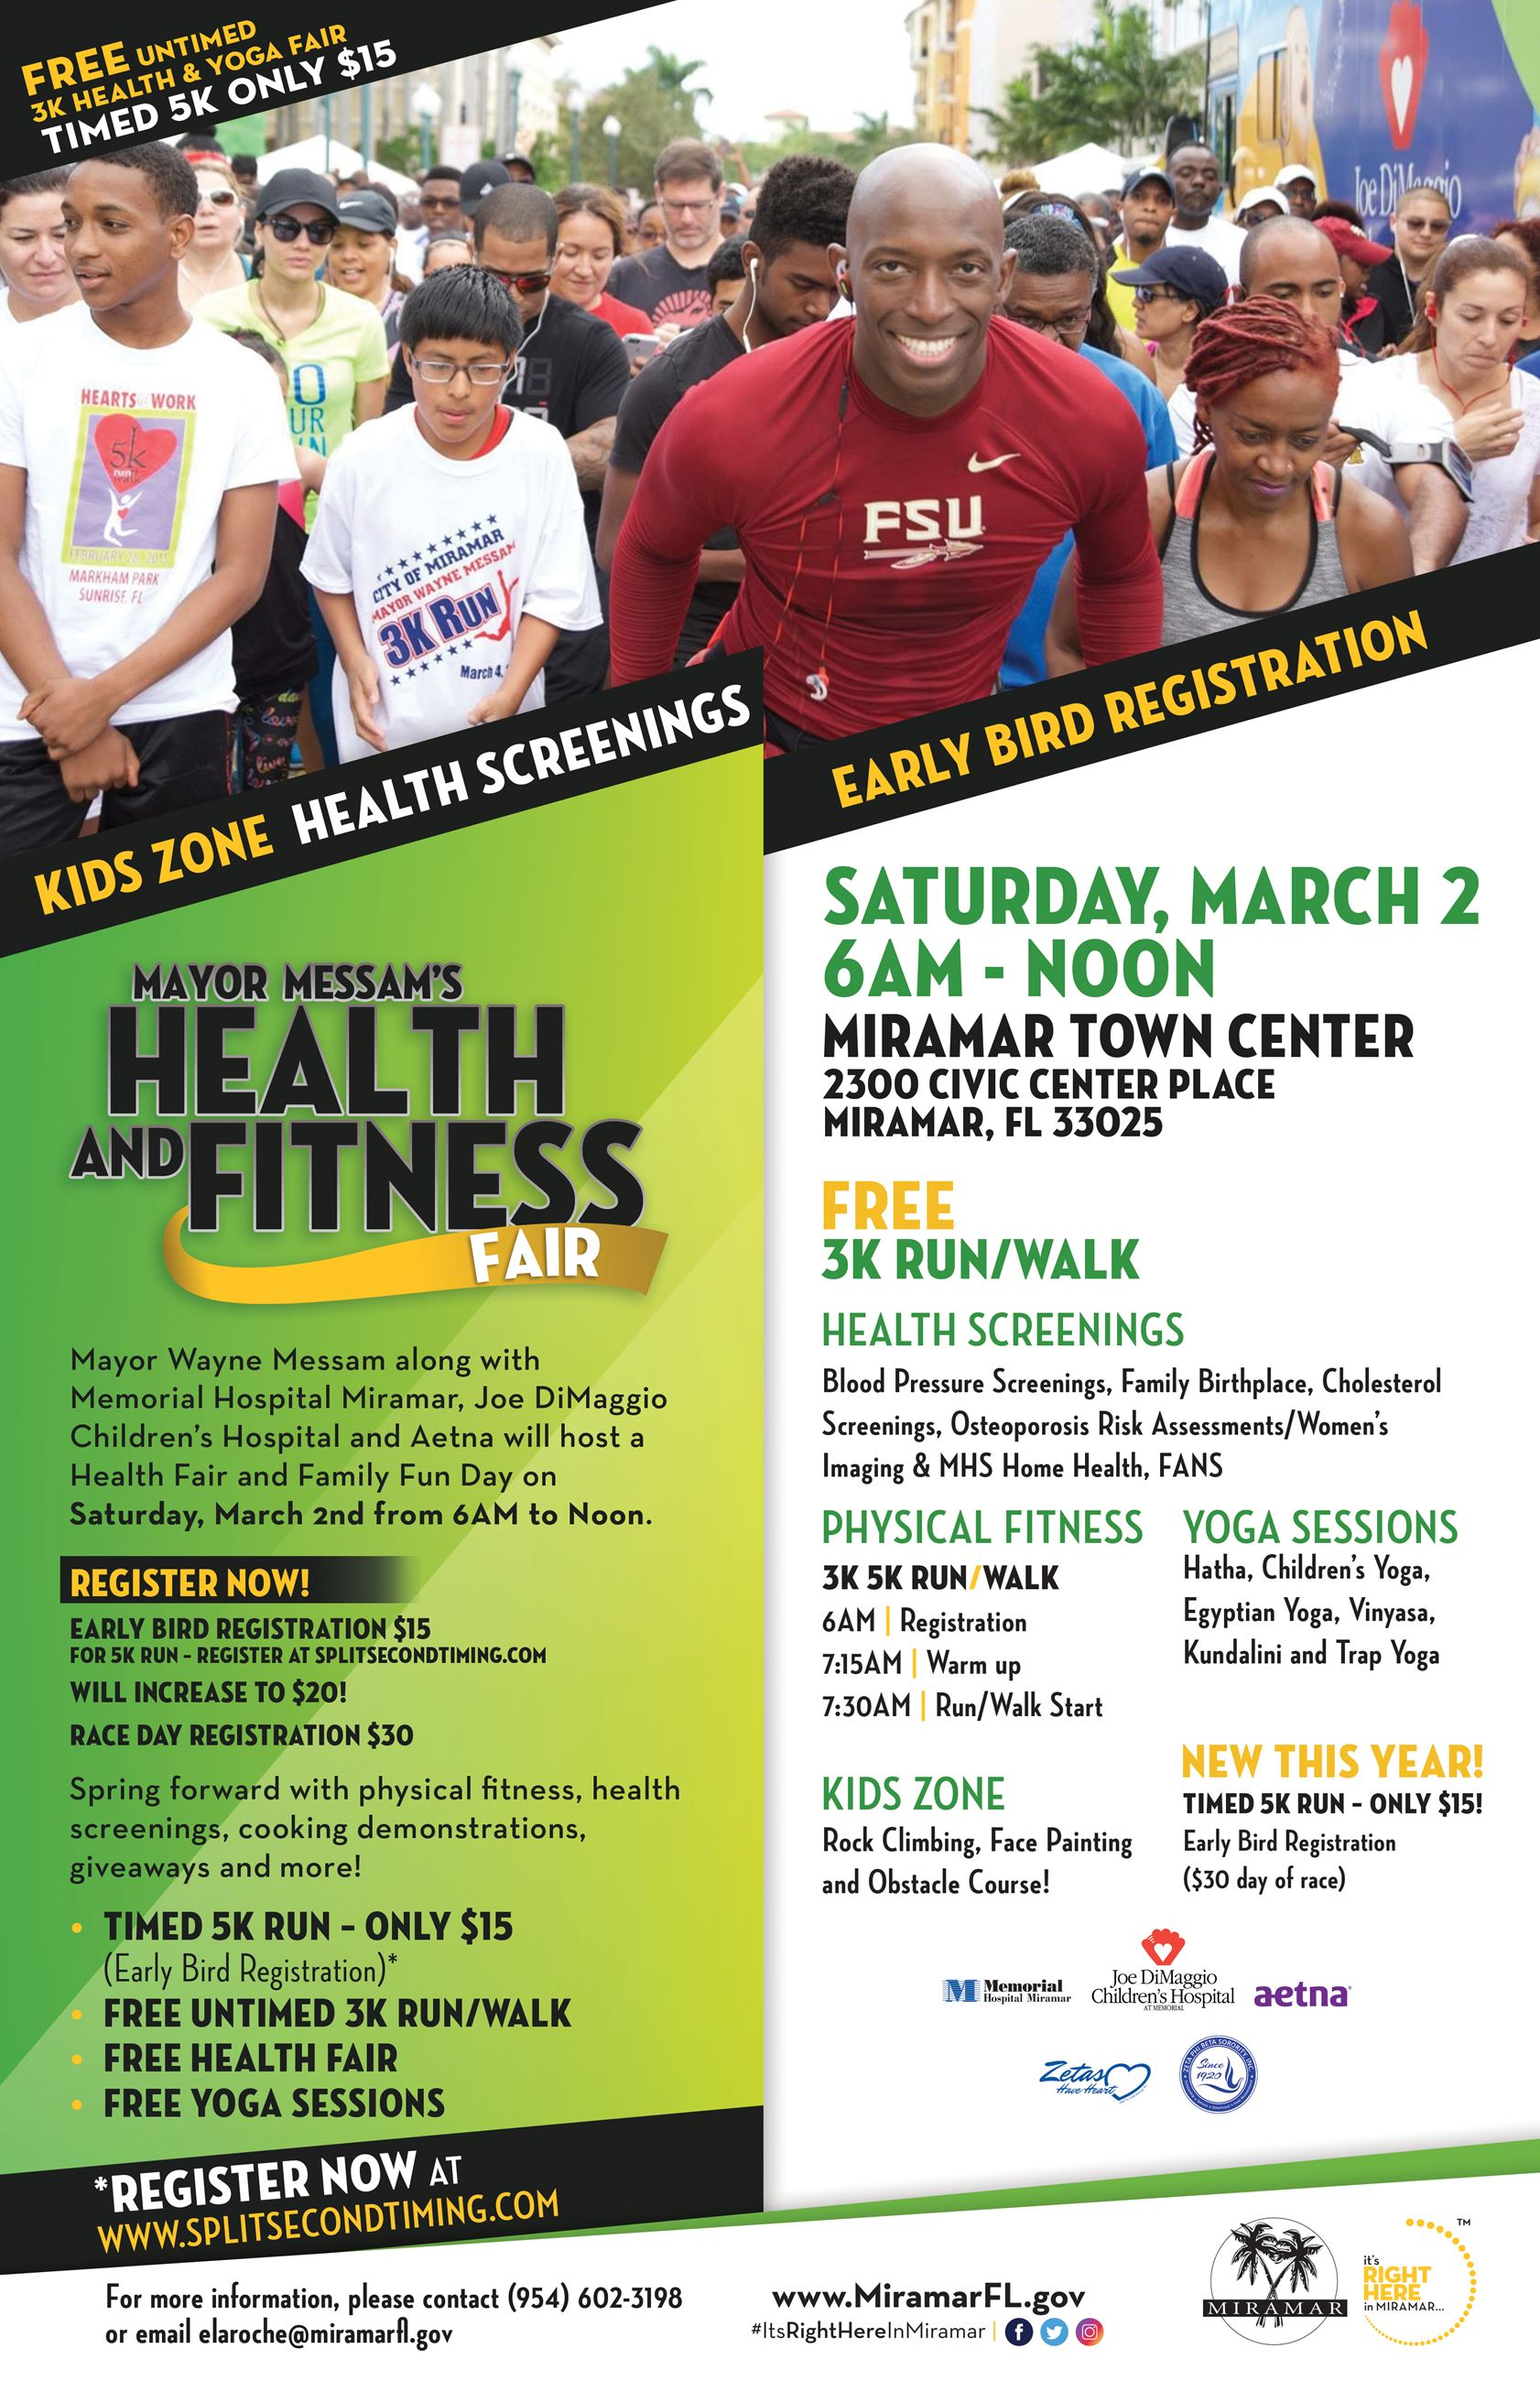 Health Fair Flyer - 2019